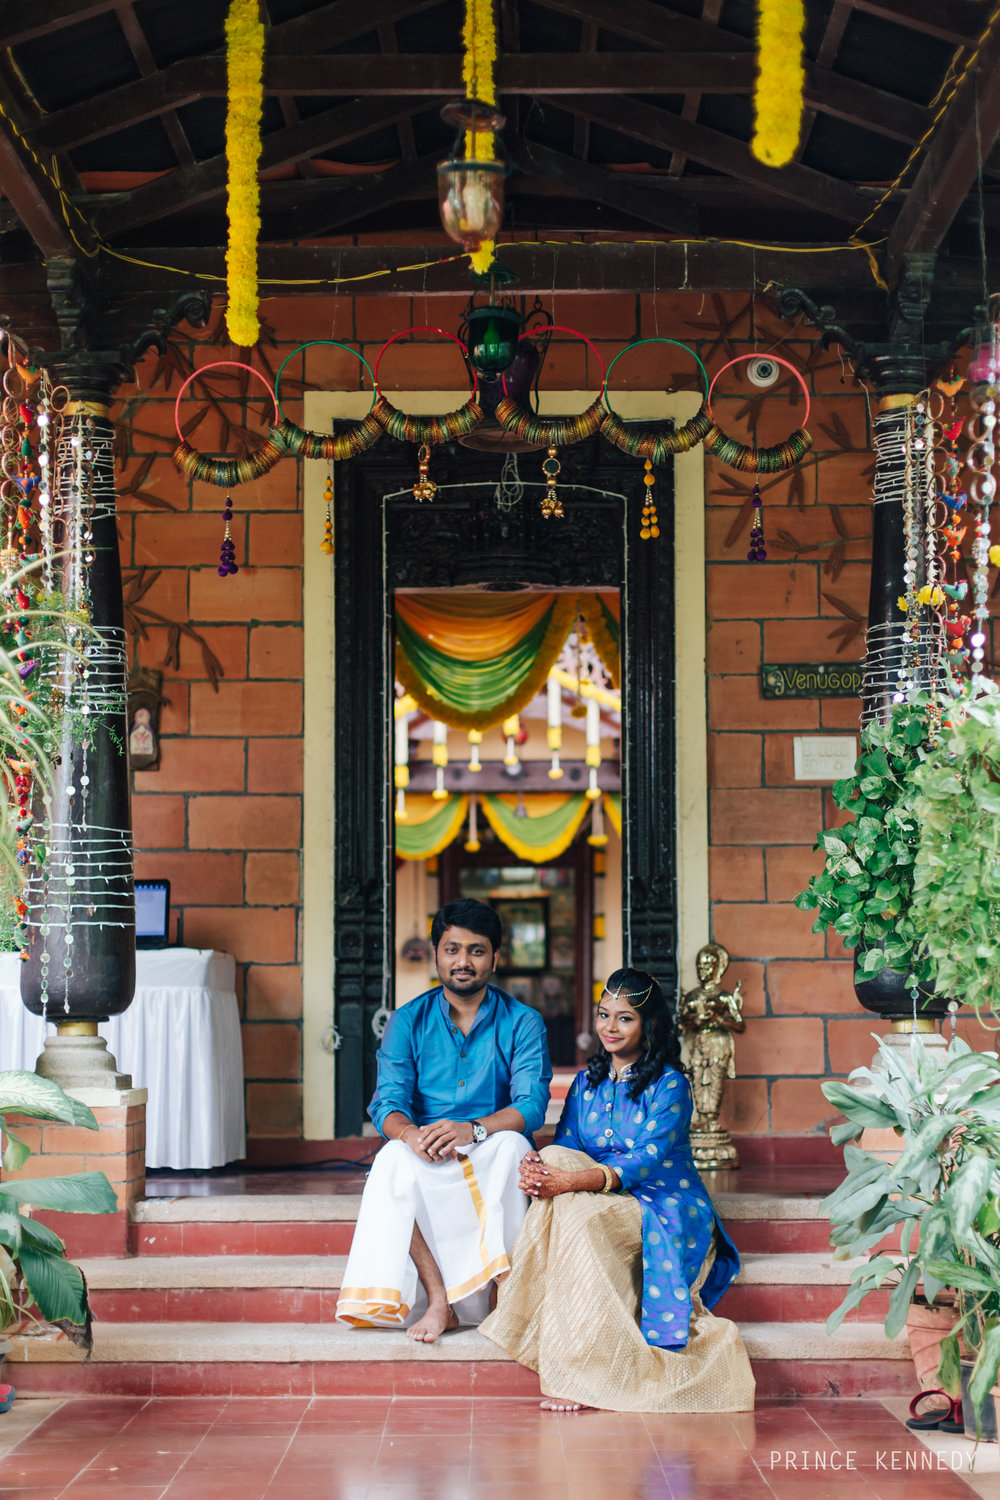 Engagement-Couple-Portrait-Portraiture-Wedding-Couple-Portrait-Chennai-Photographer-Candid-Photography-Destination-Best-Prince-Kennedy-Photography-65.jpg